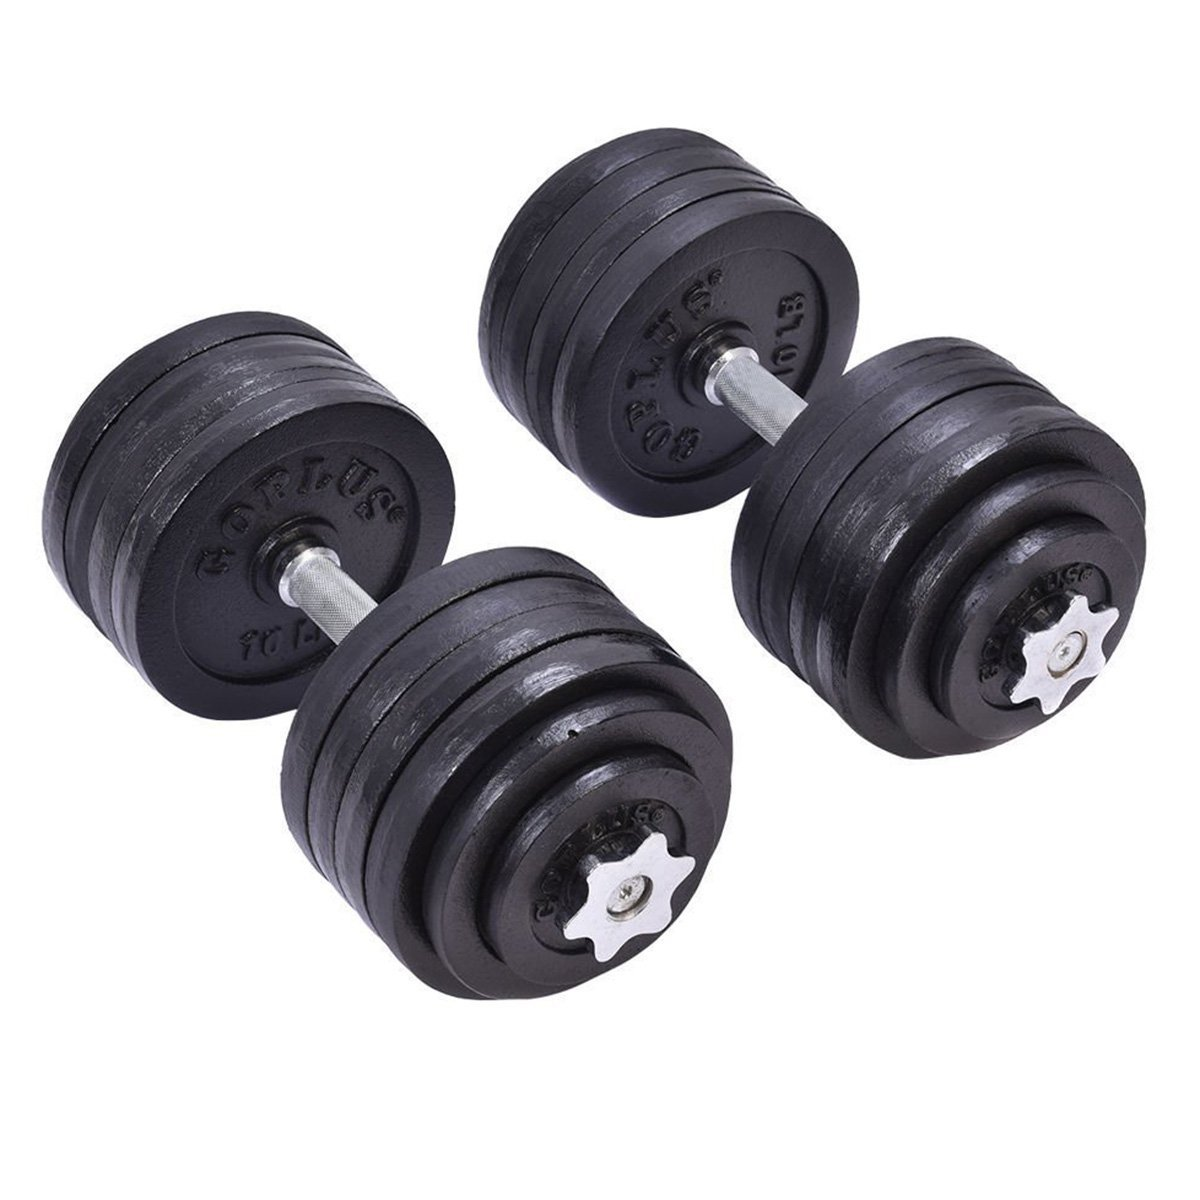 2PC Weight Dumbbell 64 LB Adjustable Cap Gym Barbell Plates Body Fitness Workout